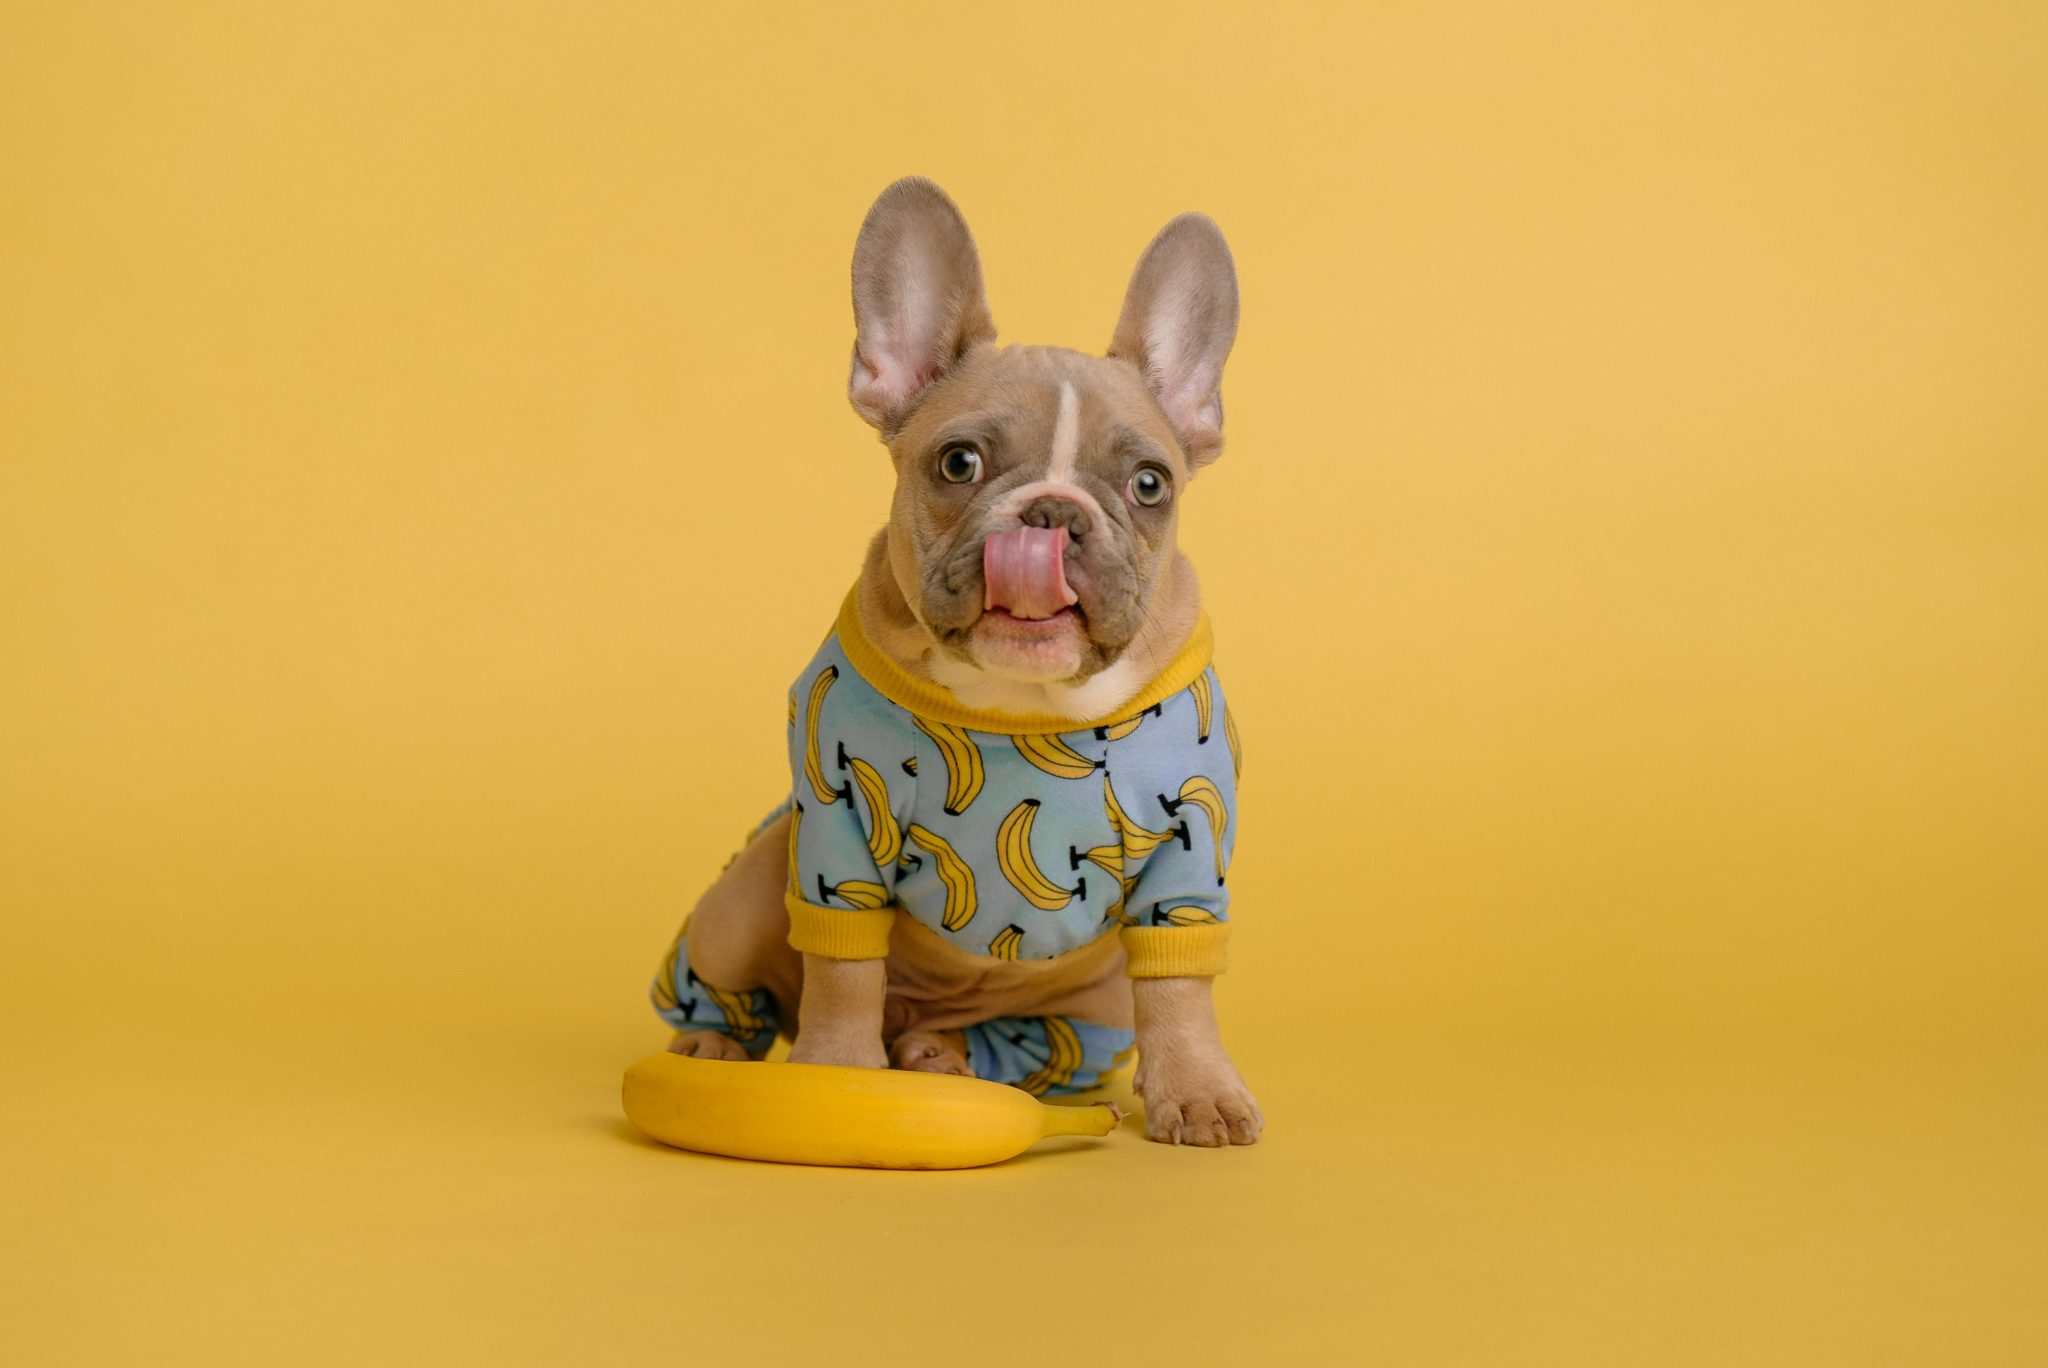 are bananas good for dogs?